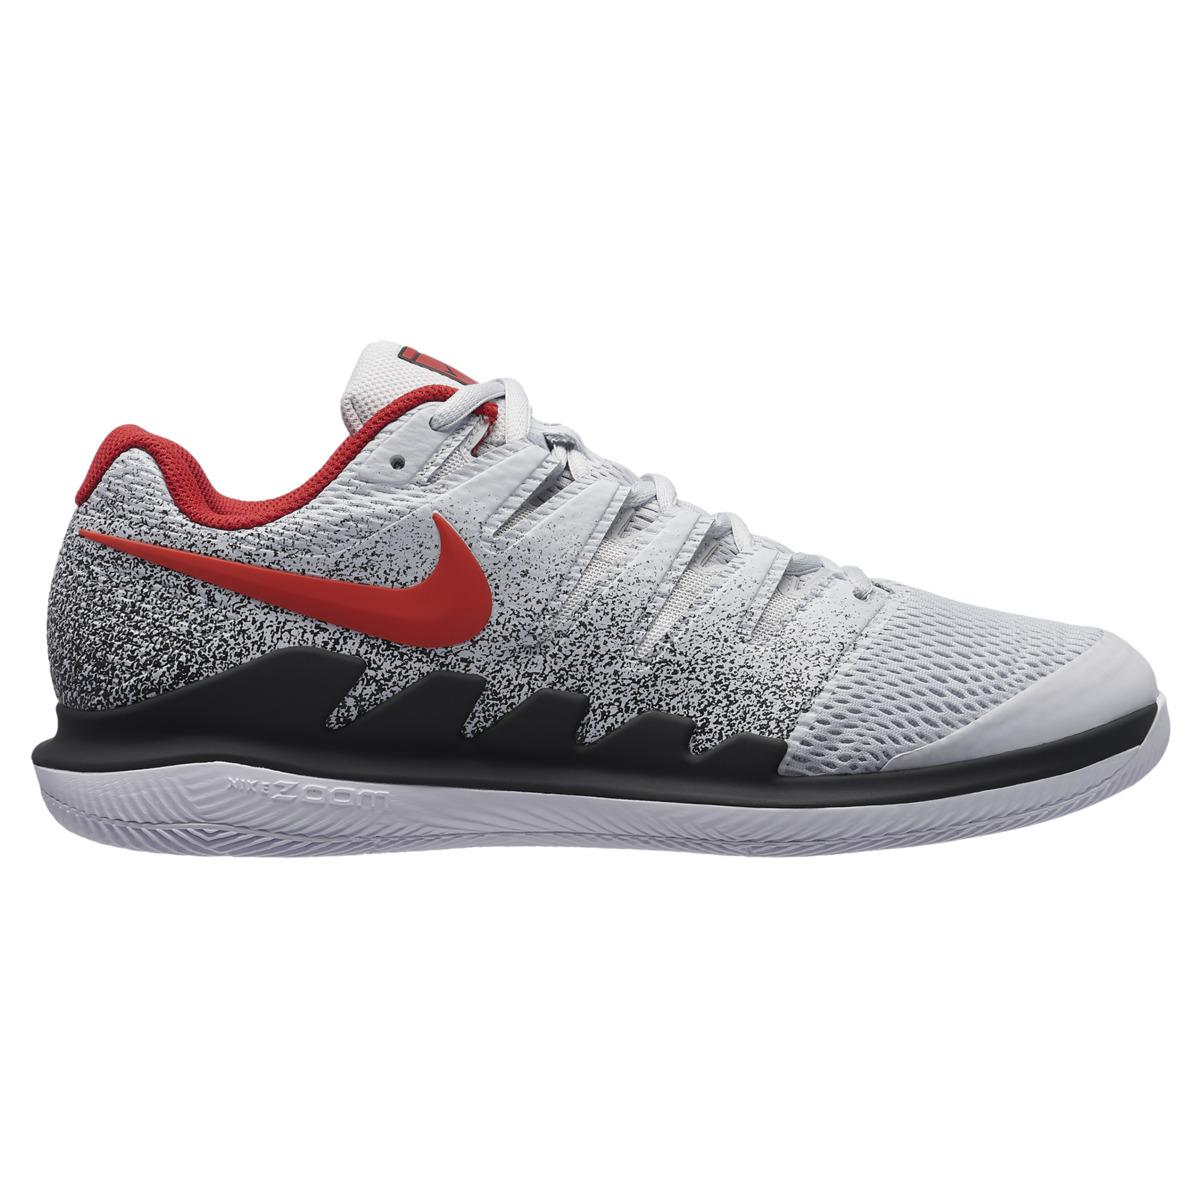 Nike. Men's Air Zoom Vapor Tennis/paddle Shoes